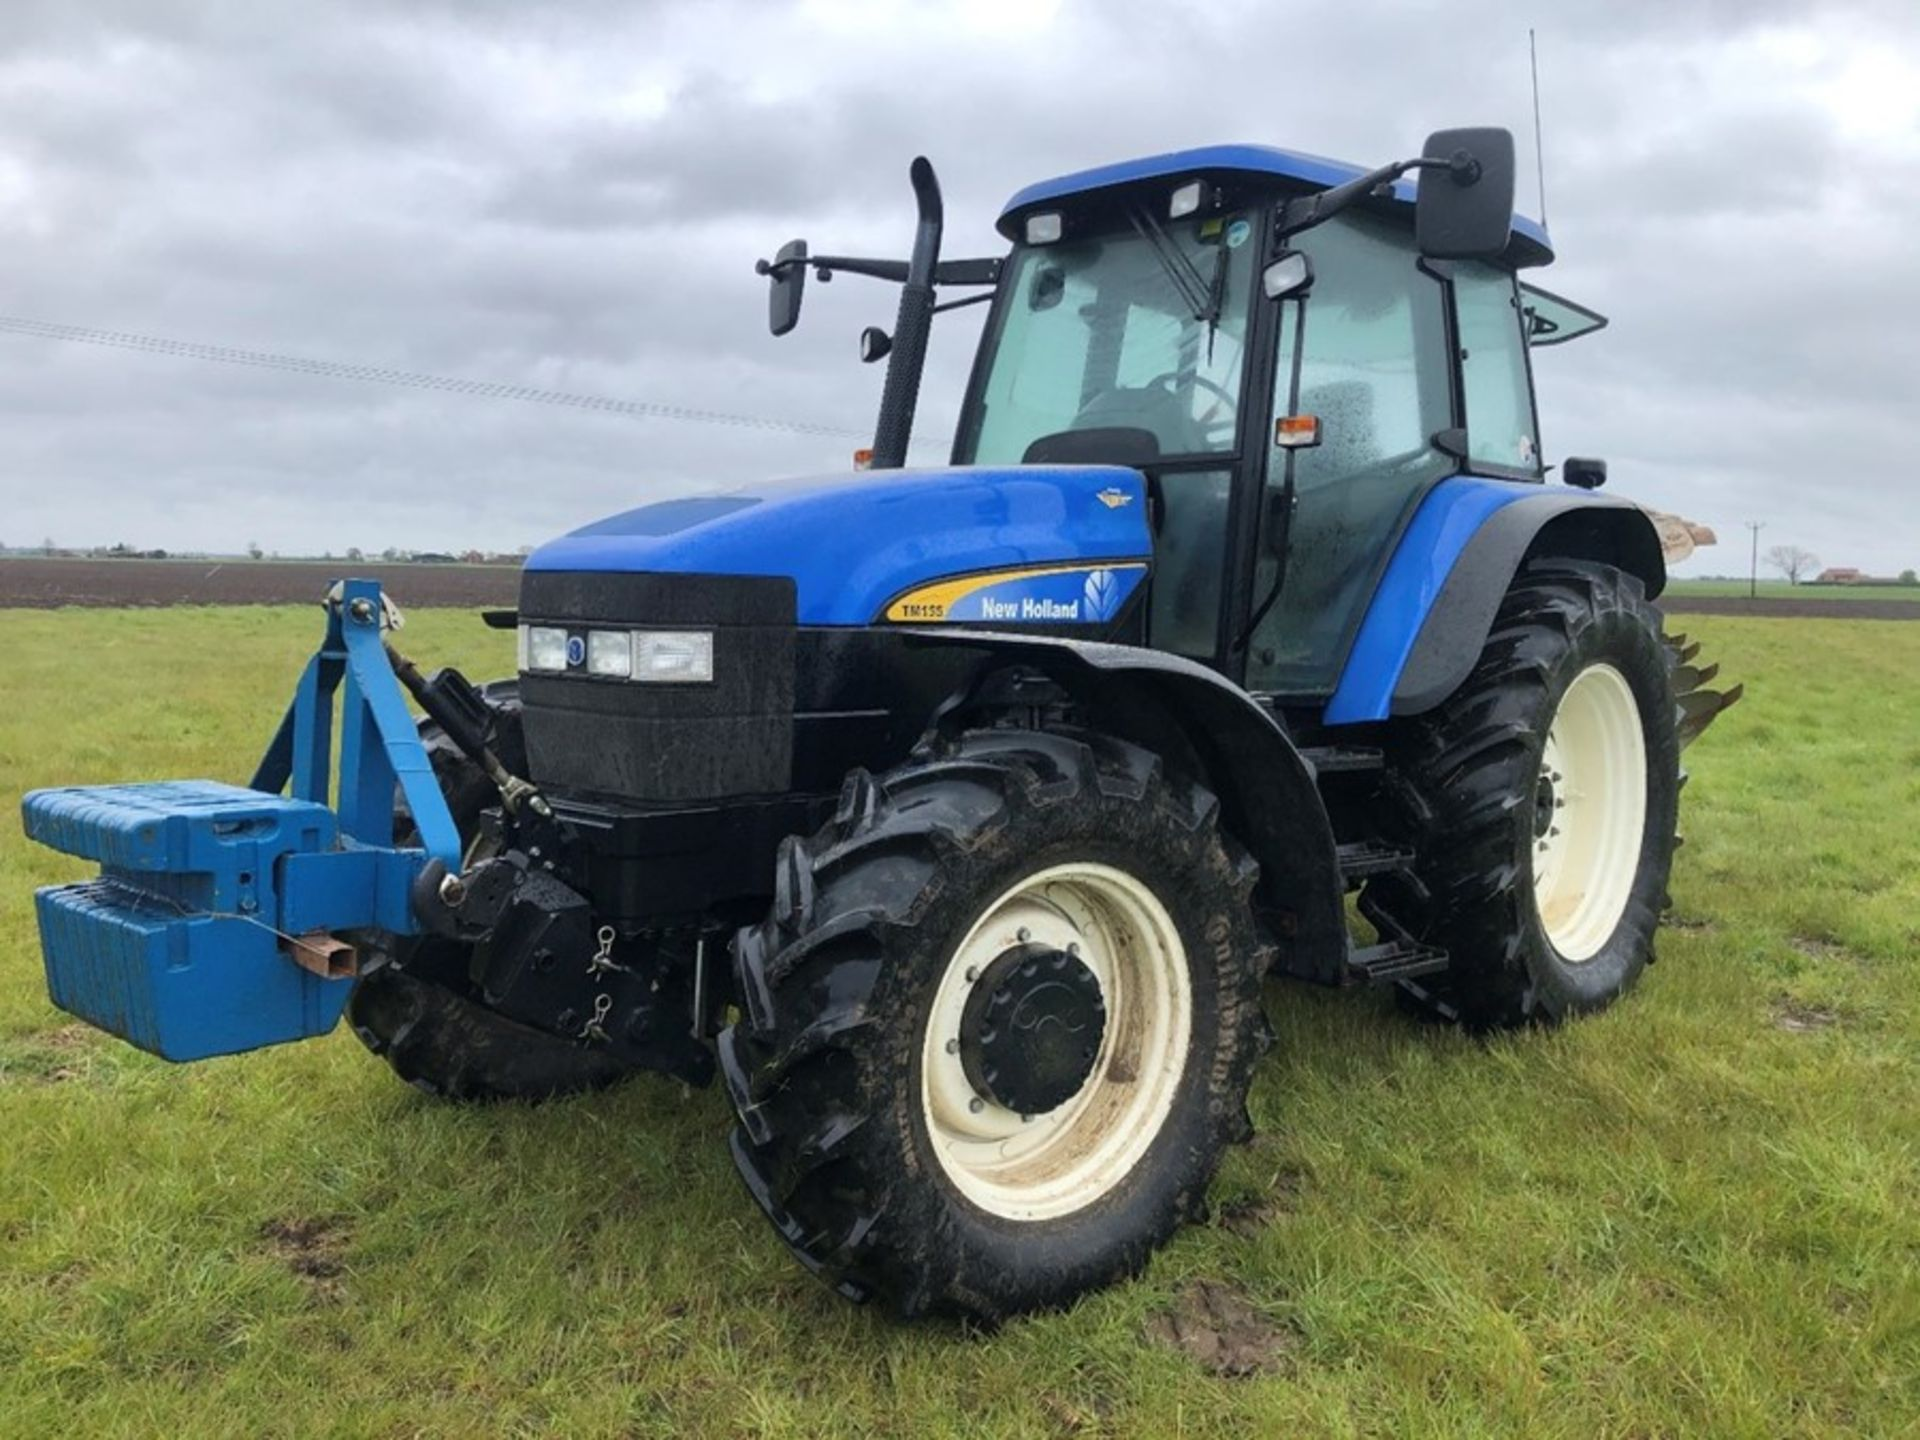 (07) New Holland TM 155 - Image 7 of 10